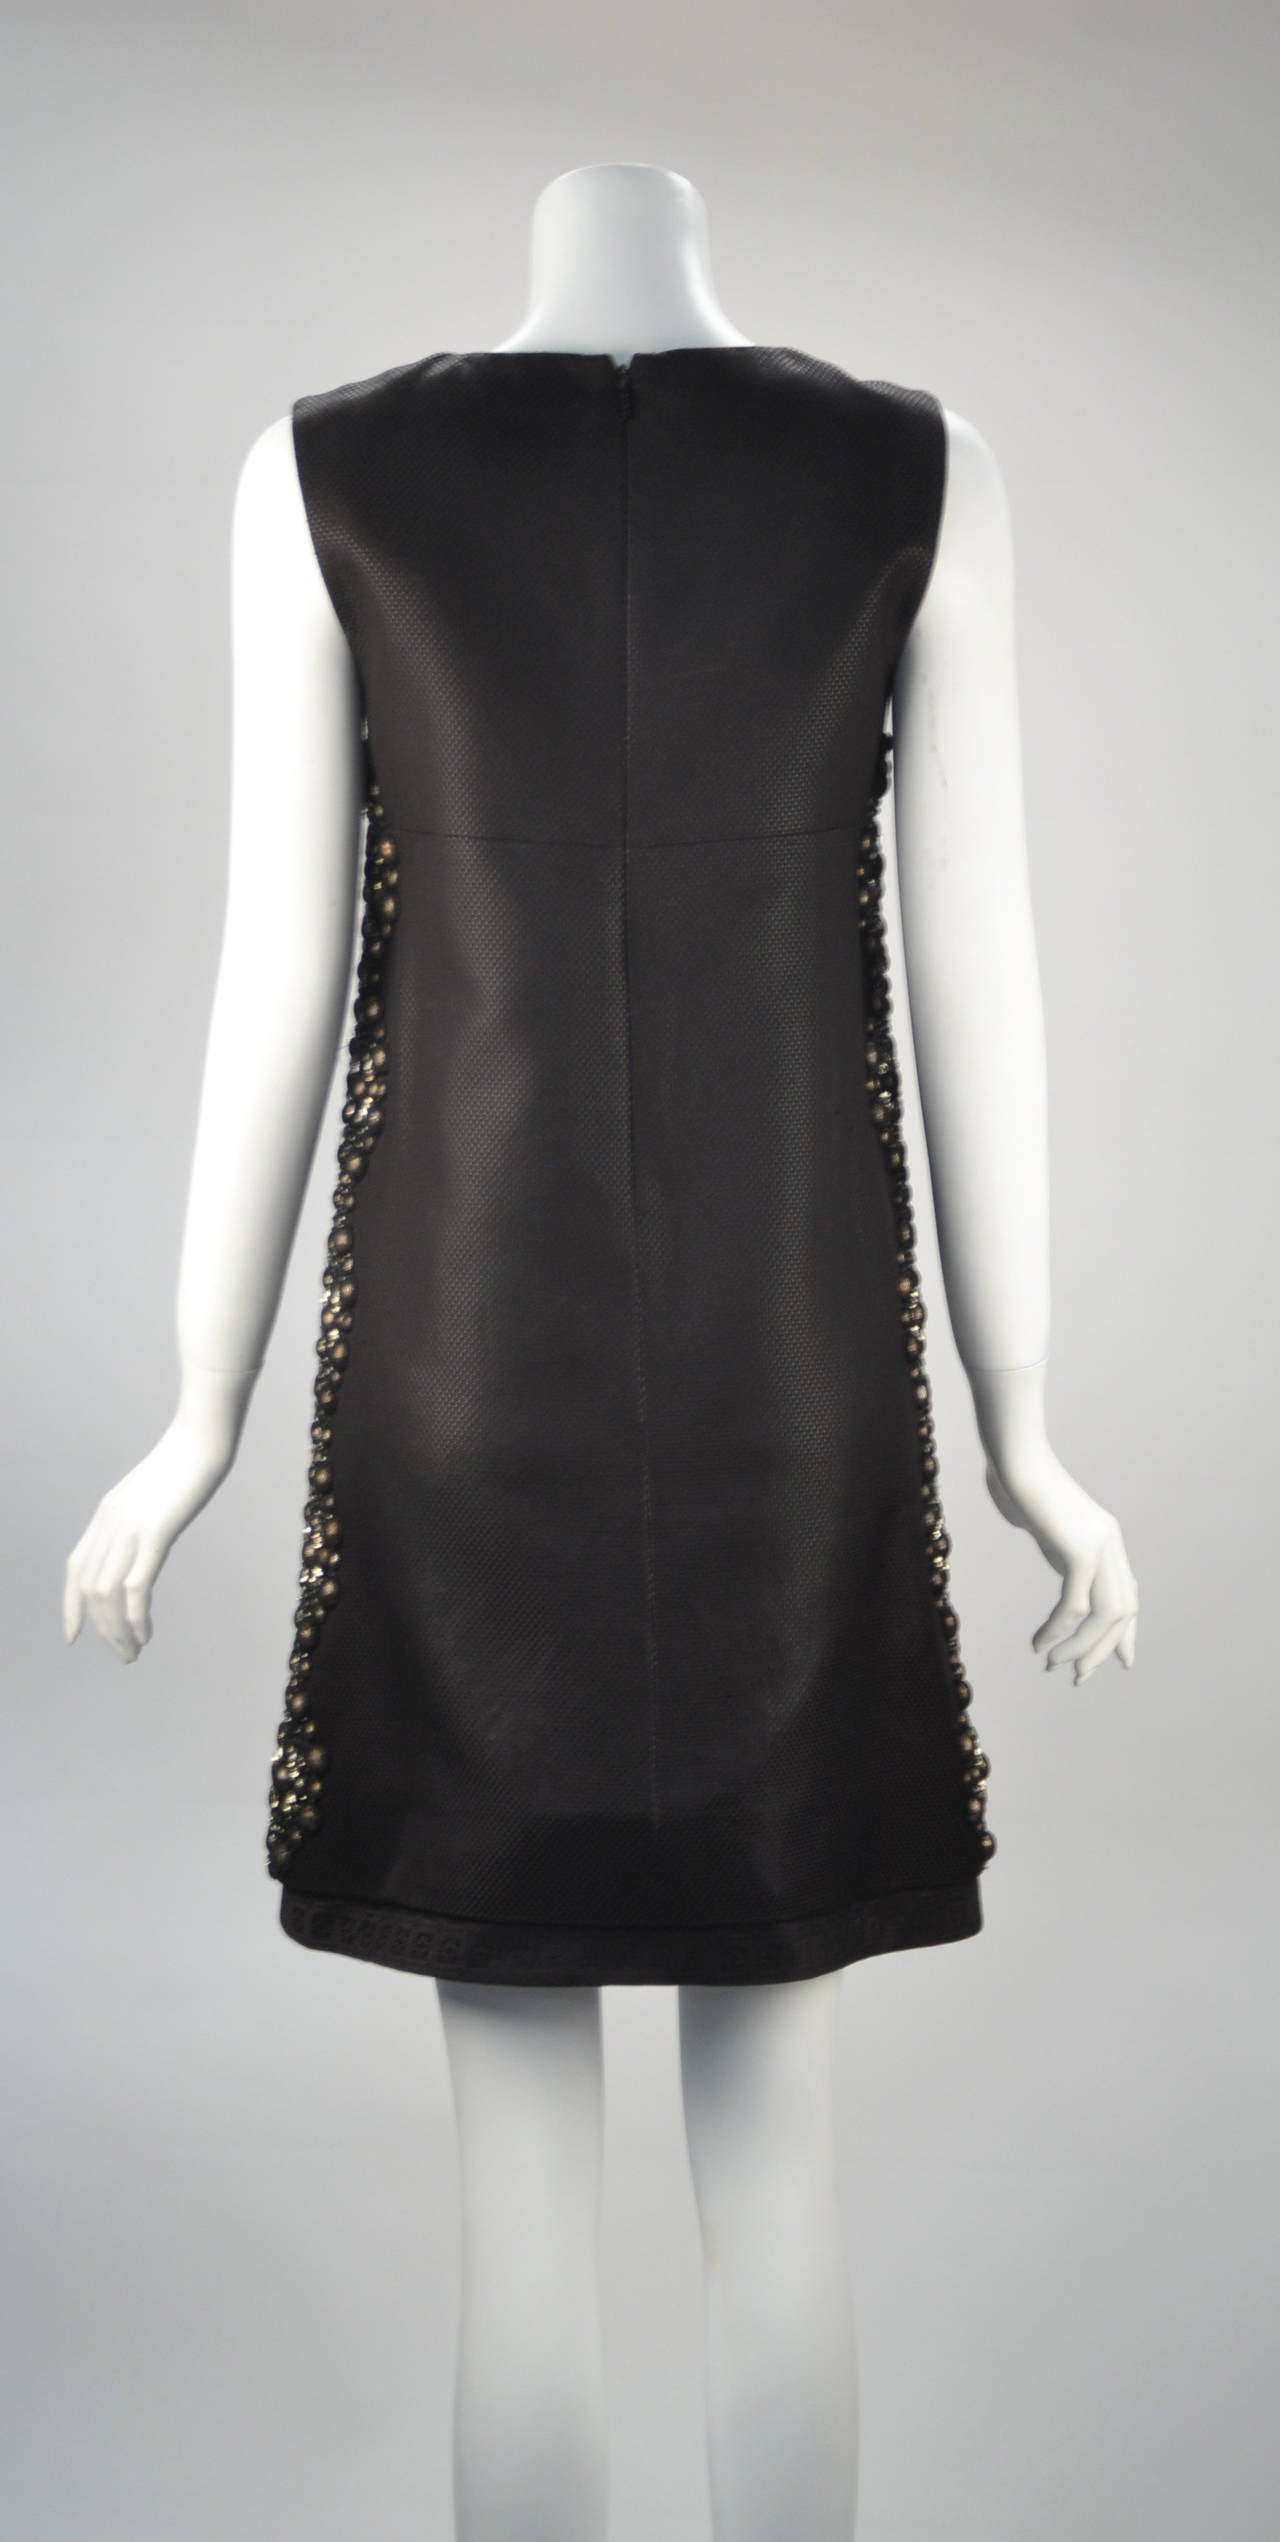 21st Century Black Studded Gucci Dress  For Sale 4